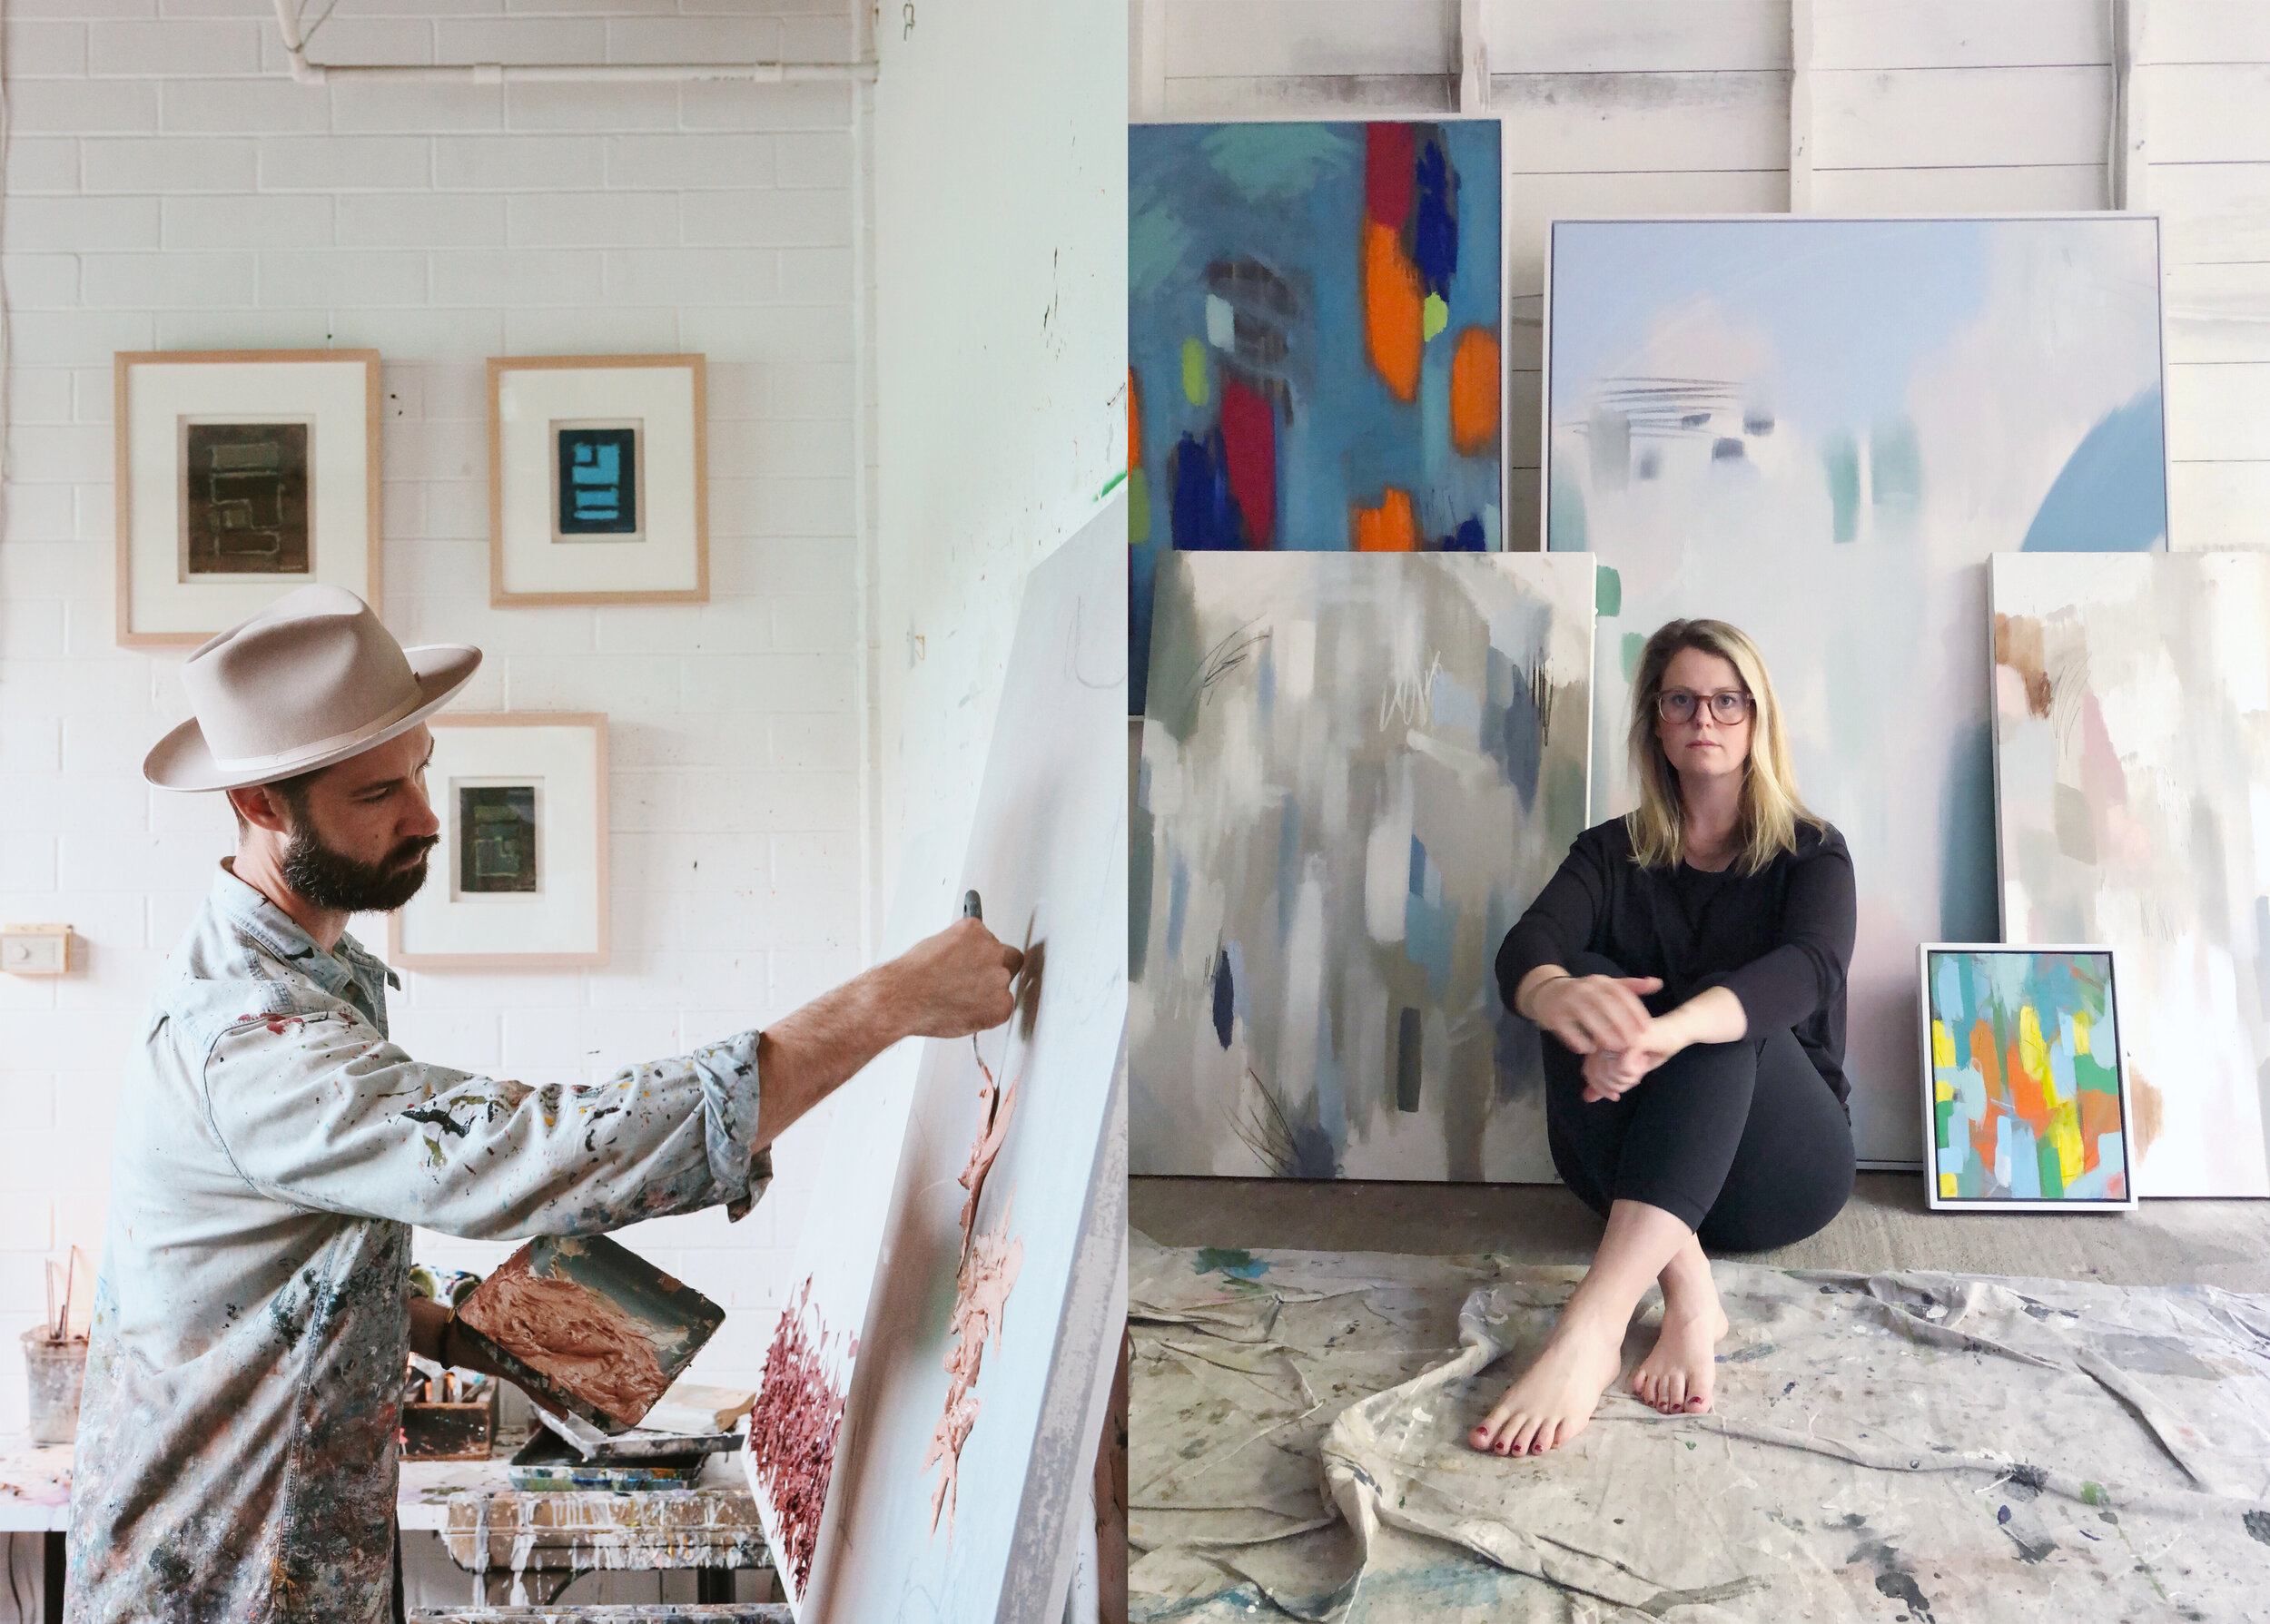 EAST Austin Studio Tour - Guinn + Hamilton Art ShowNovember 16–17 & 23–24, 2019, 12-6pmBig Medium's East Austin Studio Tour (EAST) is a free, annual, self‑guided art event where artists open their studios to the public. This year, Hamilton will be showing as a guest artist of Tyler Guinn at his studio. These two abstract expressionist artists have come together to create a visually complimentary show in a non-traditional warehouse setting. Both artists will be present to discuss their process and the inspiration behind their work.Opening ReceptionSat, Nov 16 | 4-6pm | 701 Tillery St, Unit B, Austin, TX 78702*Complimentary drinks provided by Waterloo Gin